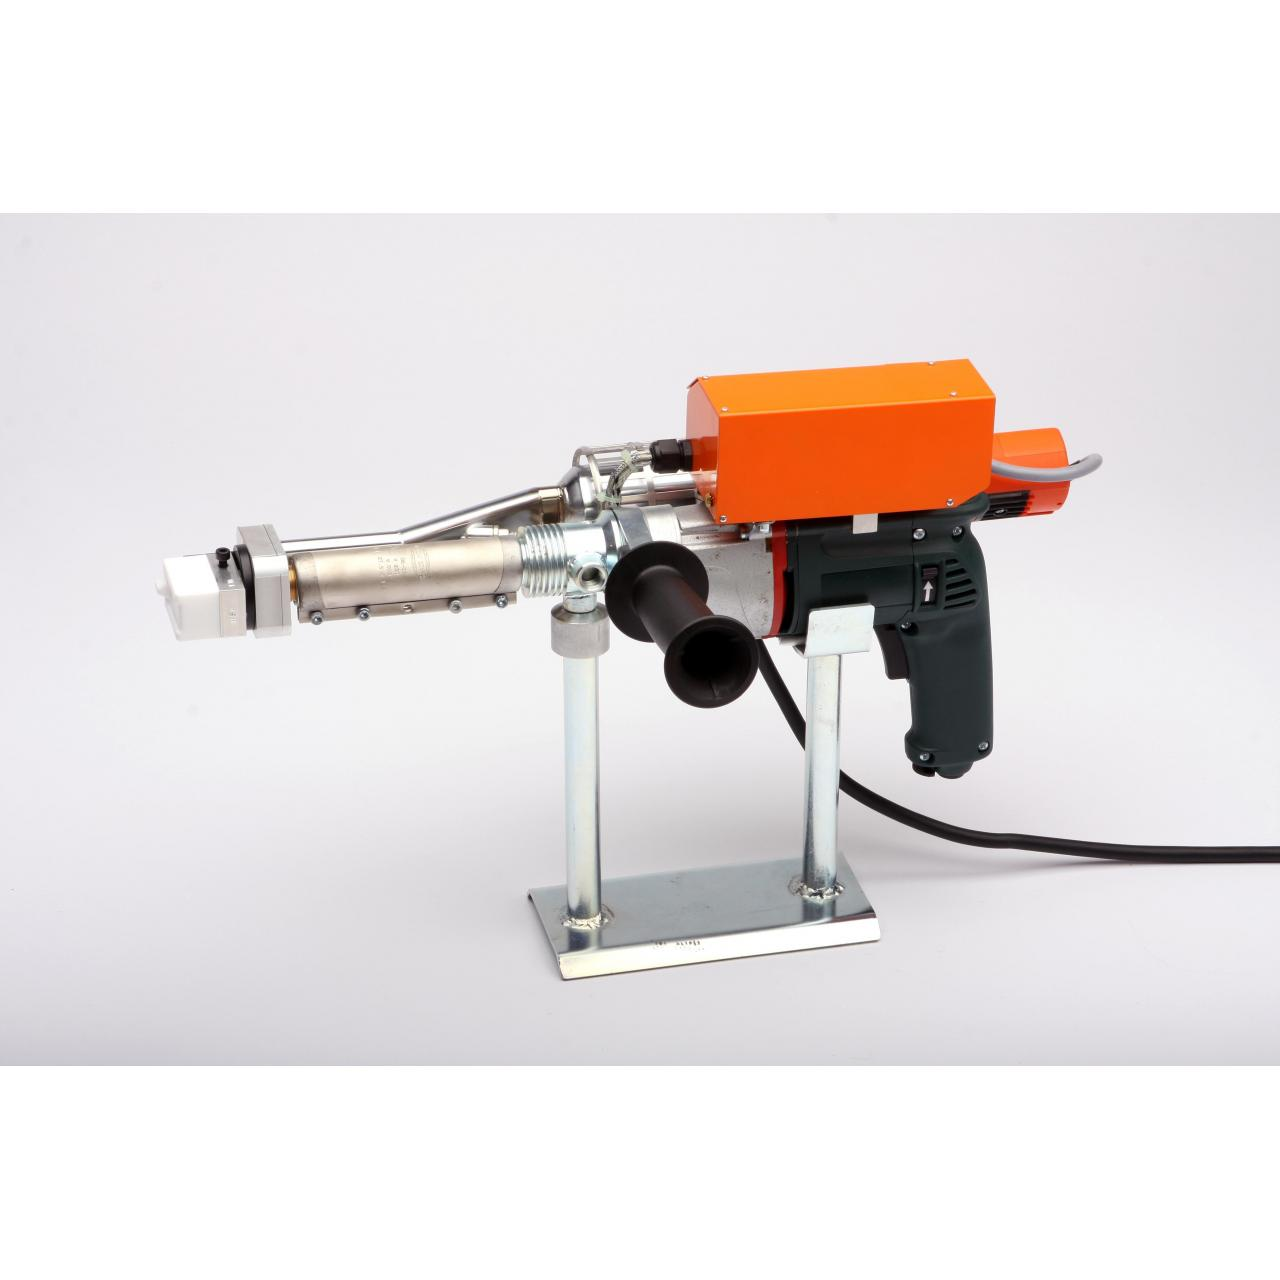 Buy cheap 620 W welding extruder HSK18 RSX from Wholesalers